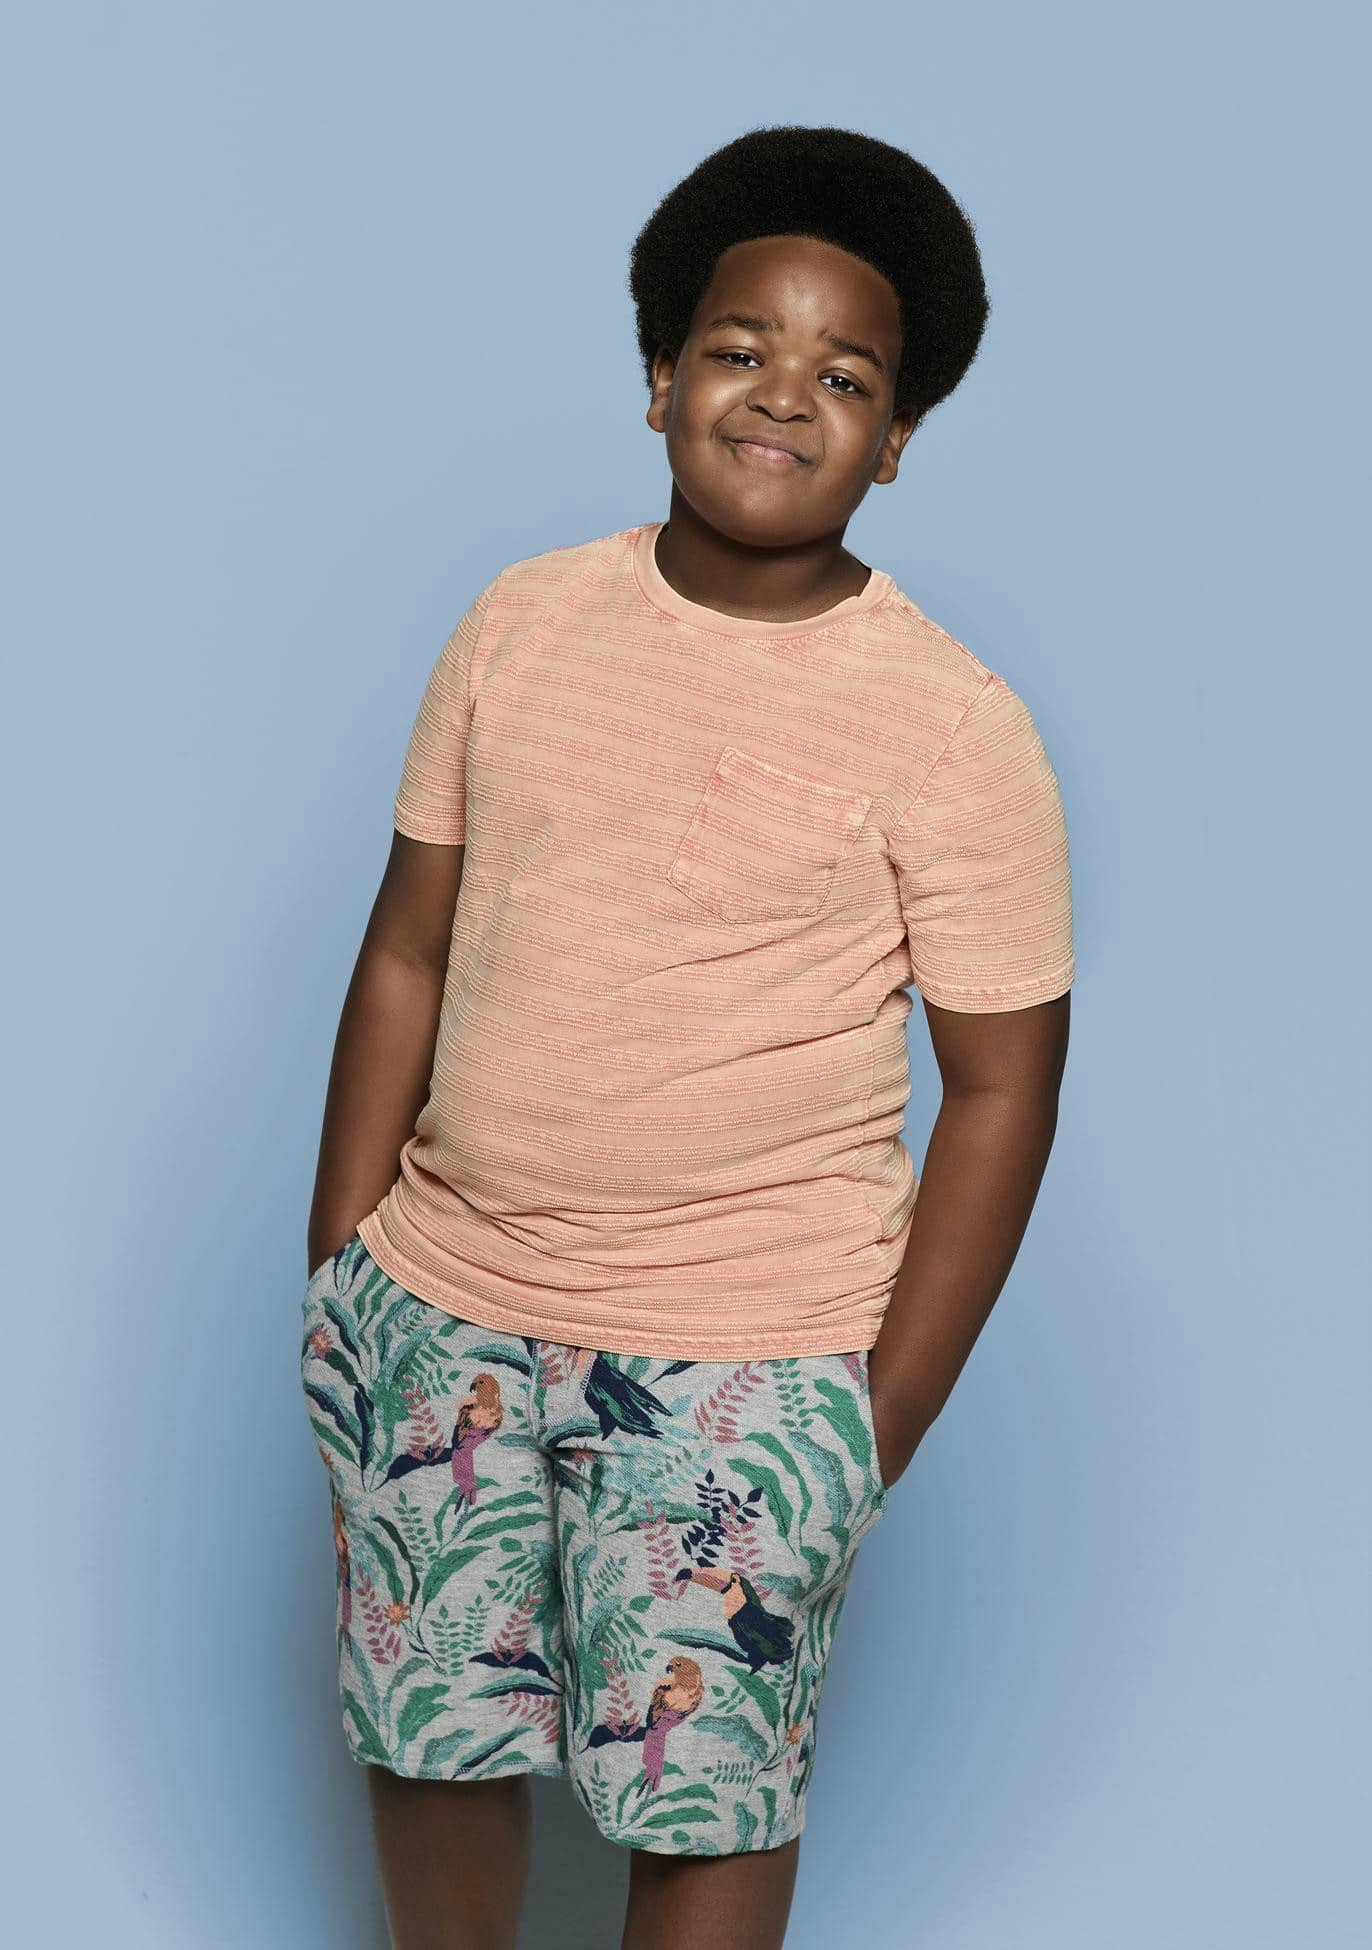 Keith L. Williams American Child Actor